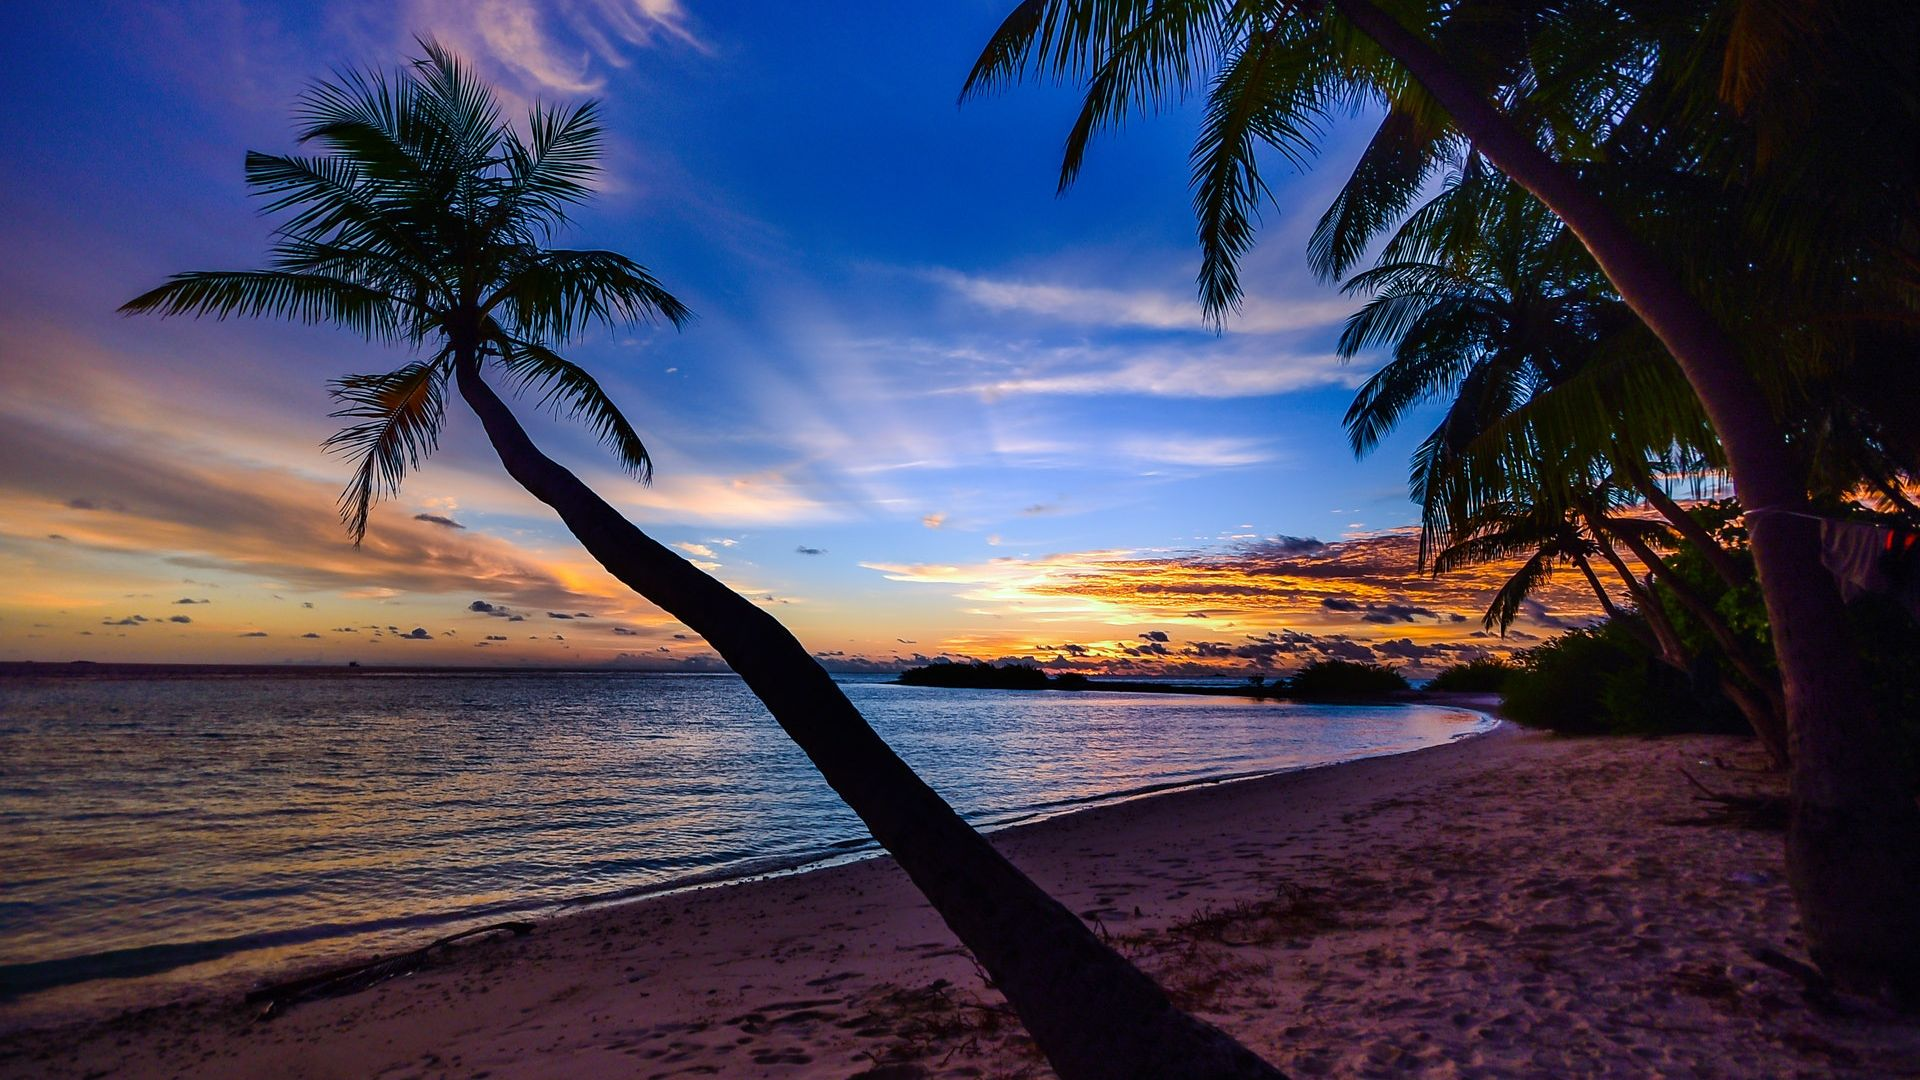 Beach Sunset Wallpaper - Palm Tree Beach Sunset - HD Wallpaper